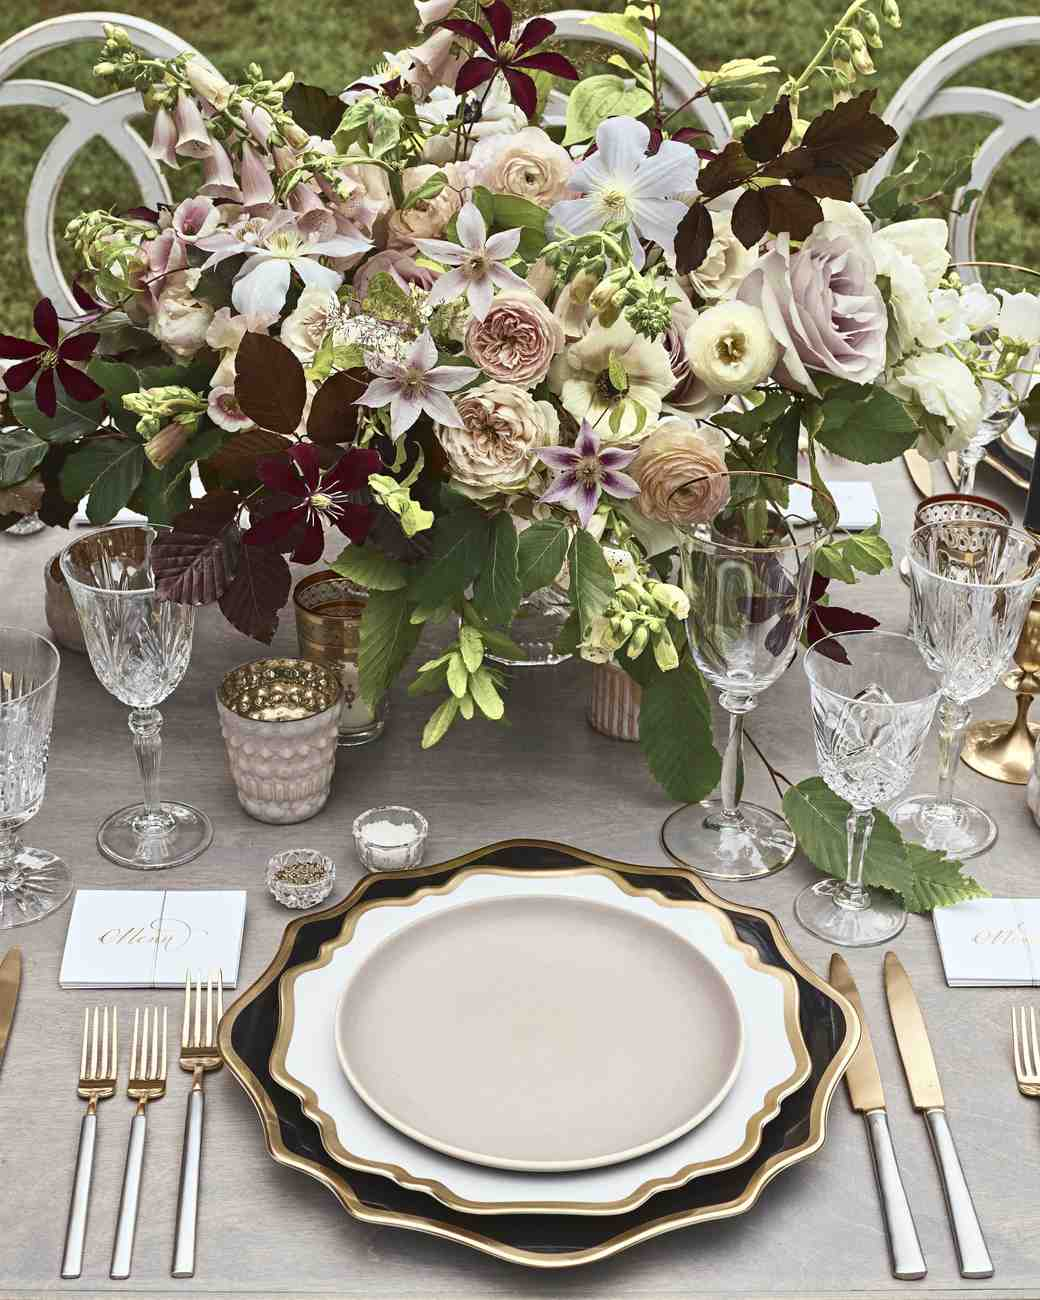 joyann jeremy wedding table setting